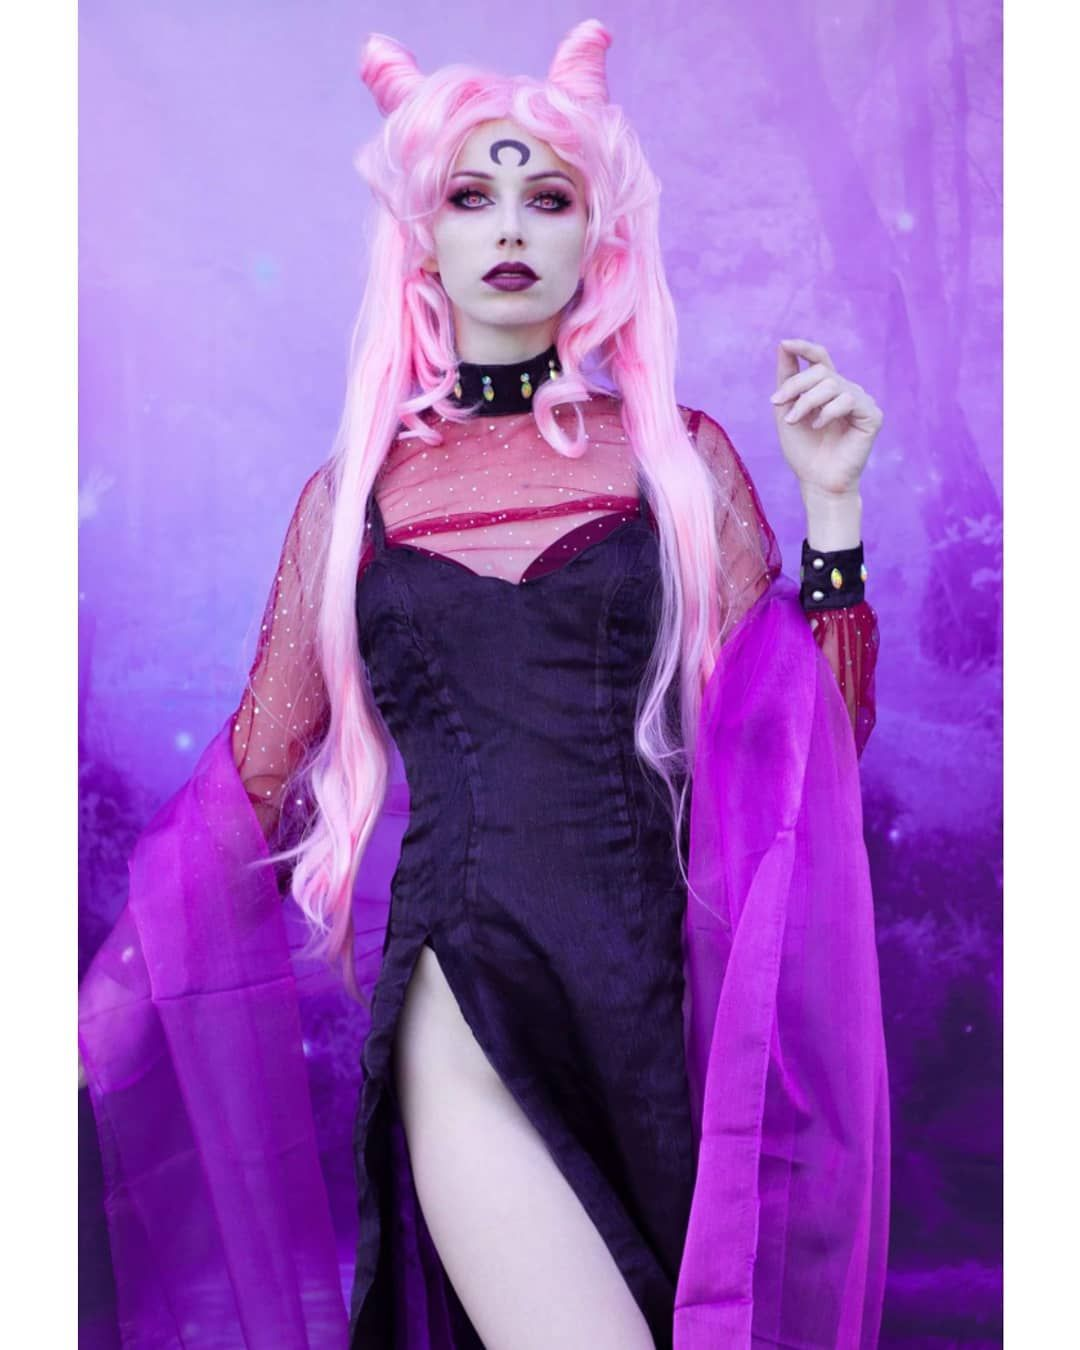 Starbuxx On Instagram Black Lady I M So Happy With How Everything Turned Out The Costume From Miccostumes Is Beautiful I M Really Happy With